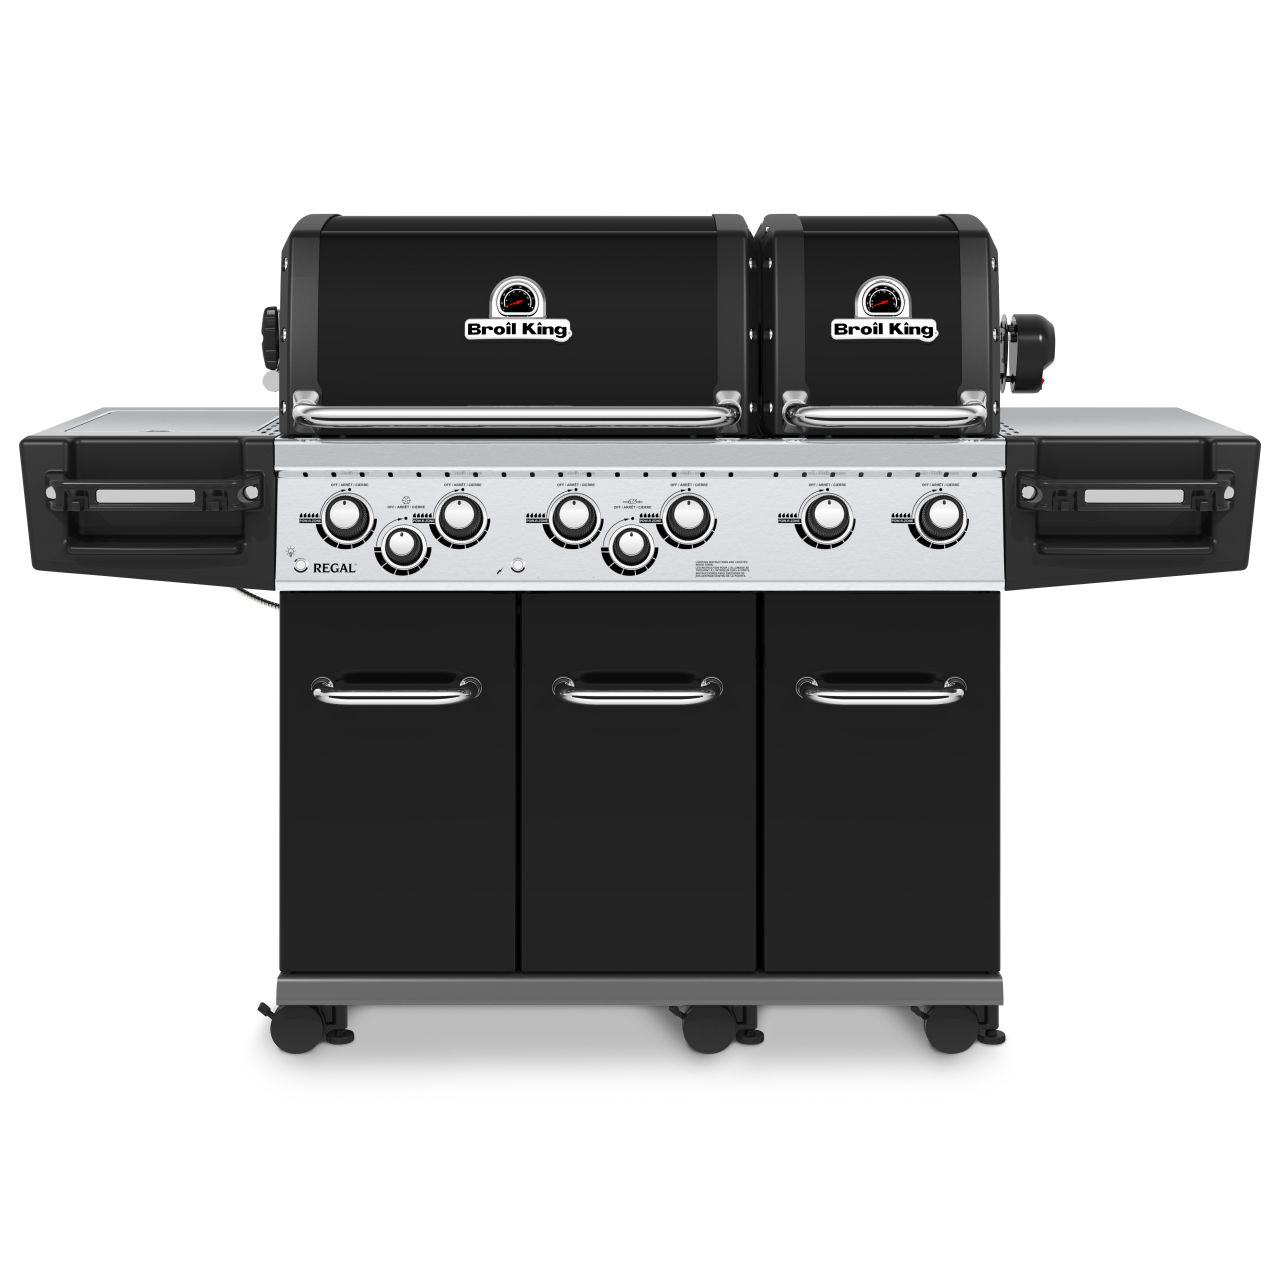 Broil King Regal 690 XL, Black